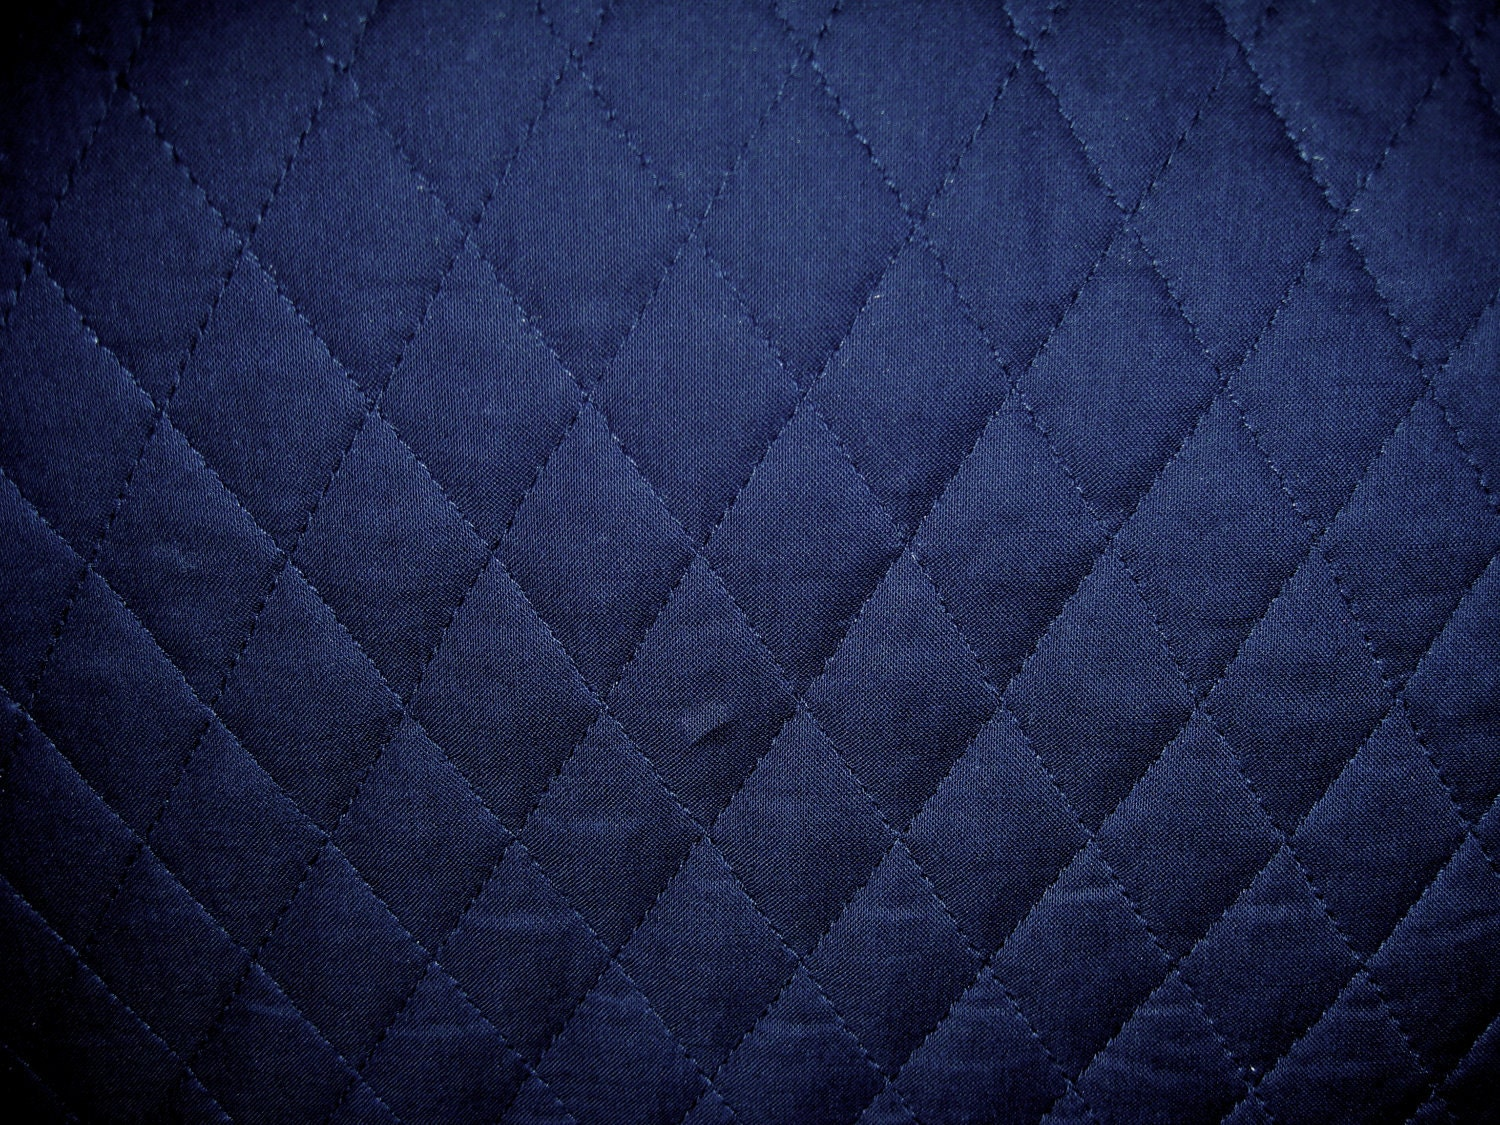 Quilted Fabric Blue Solid Navy Blue...